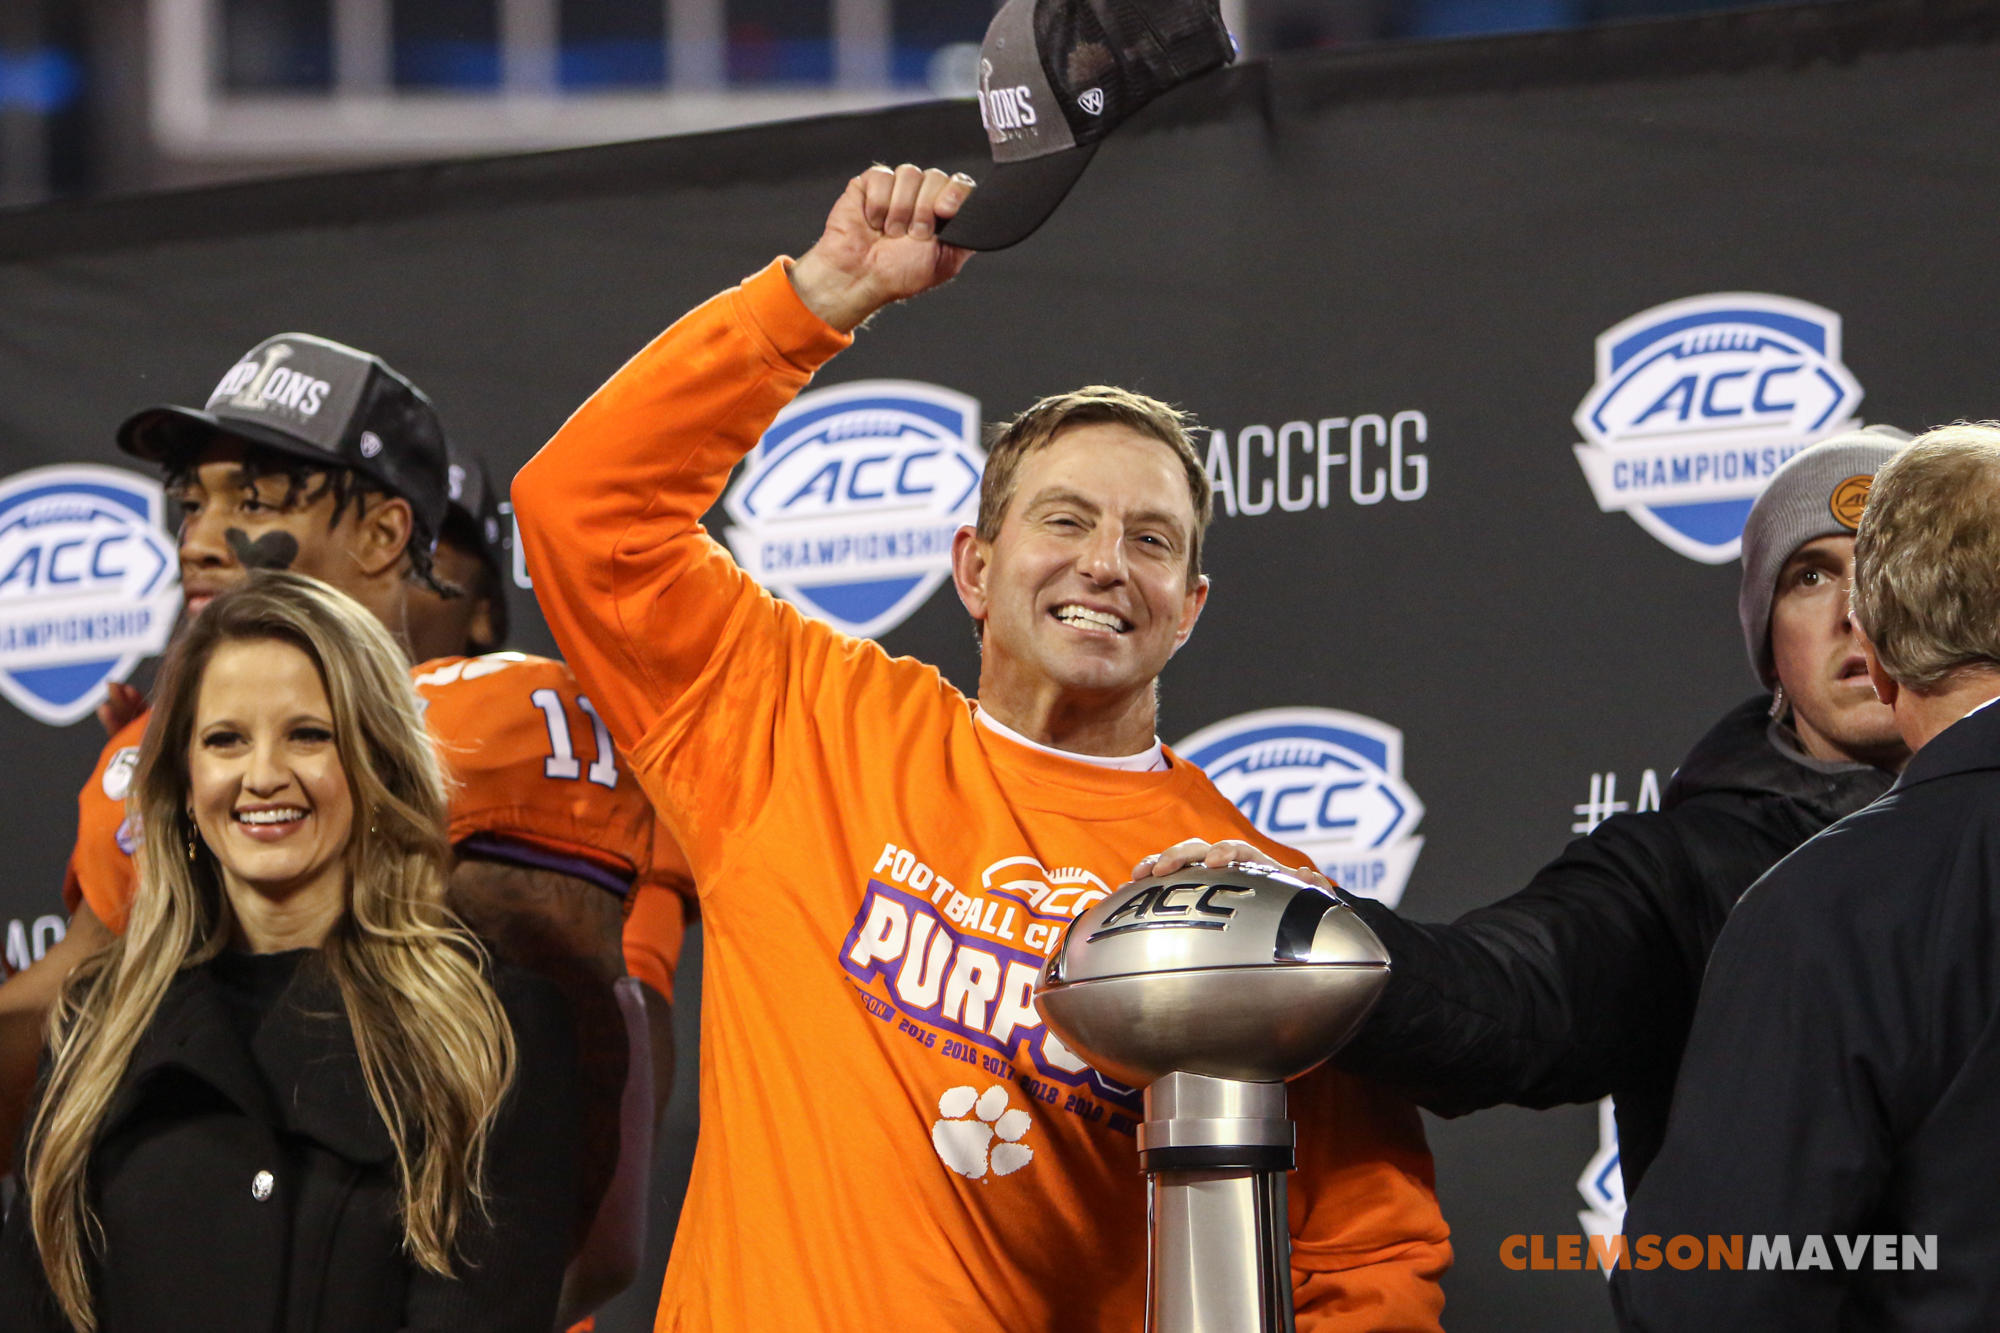 Winning in the ACC has Built the Tigers for the Playoff